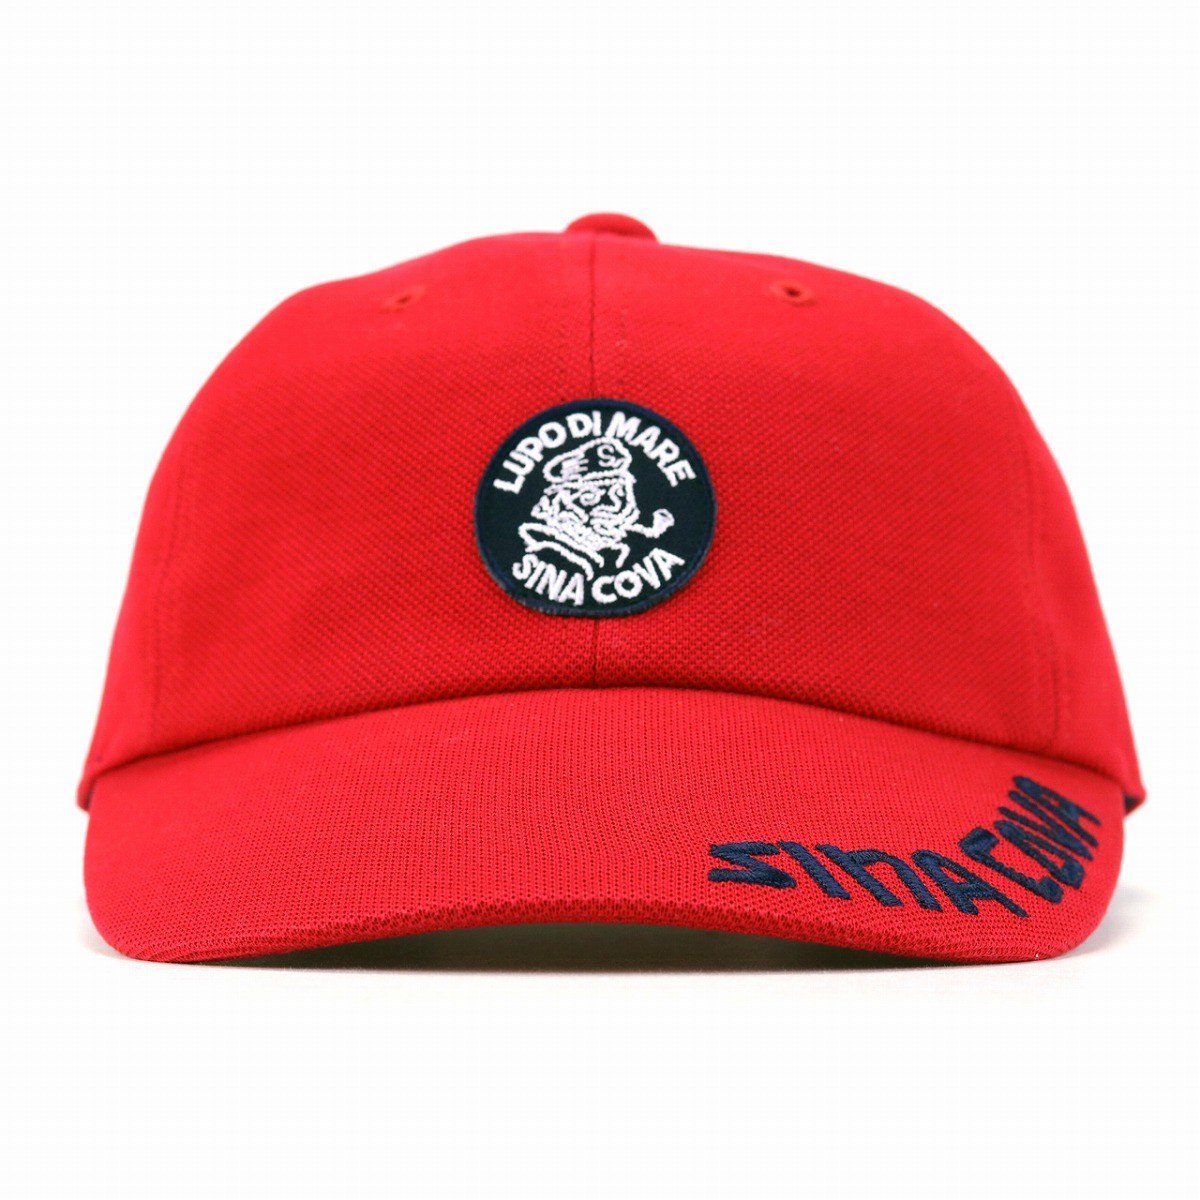 It is a gift in the China Koba hat cotton 100% SINACOVA cap men fawn men size size adjustment M L LL sports Malin fashion brand logo cap ultraviolet rays measures Shin pull / red red [baseball cap] Father's Day when a product made in Japan baseball cap g